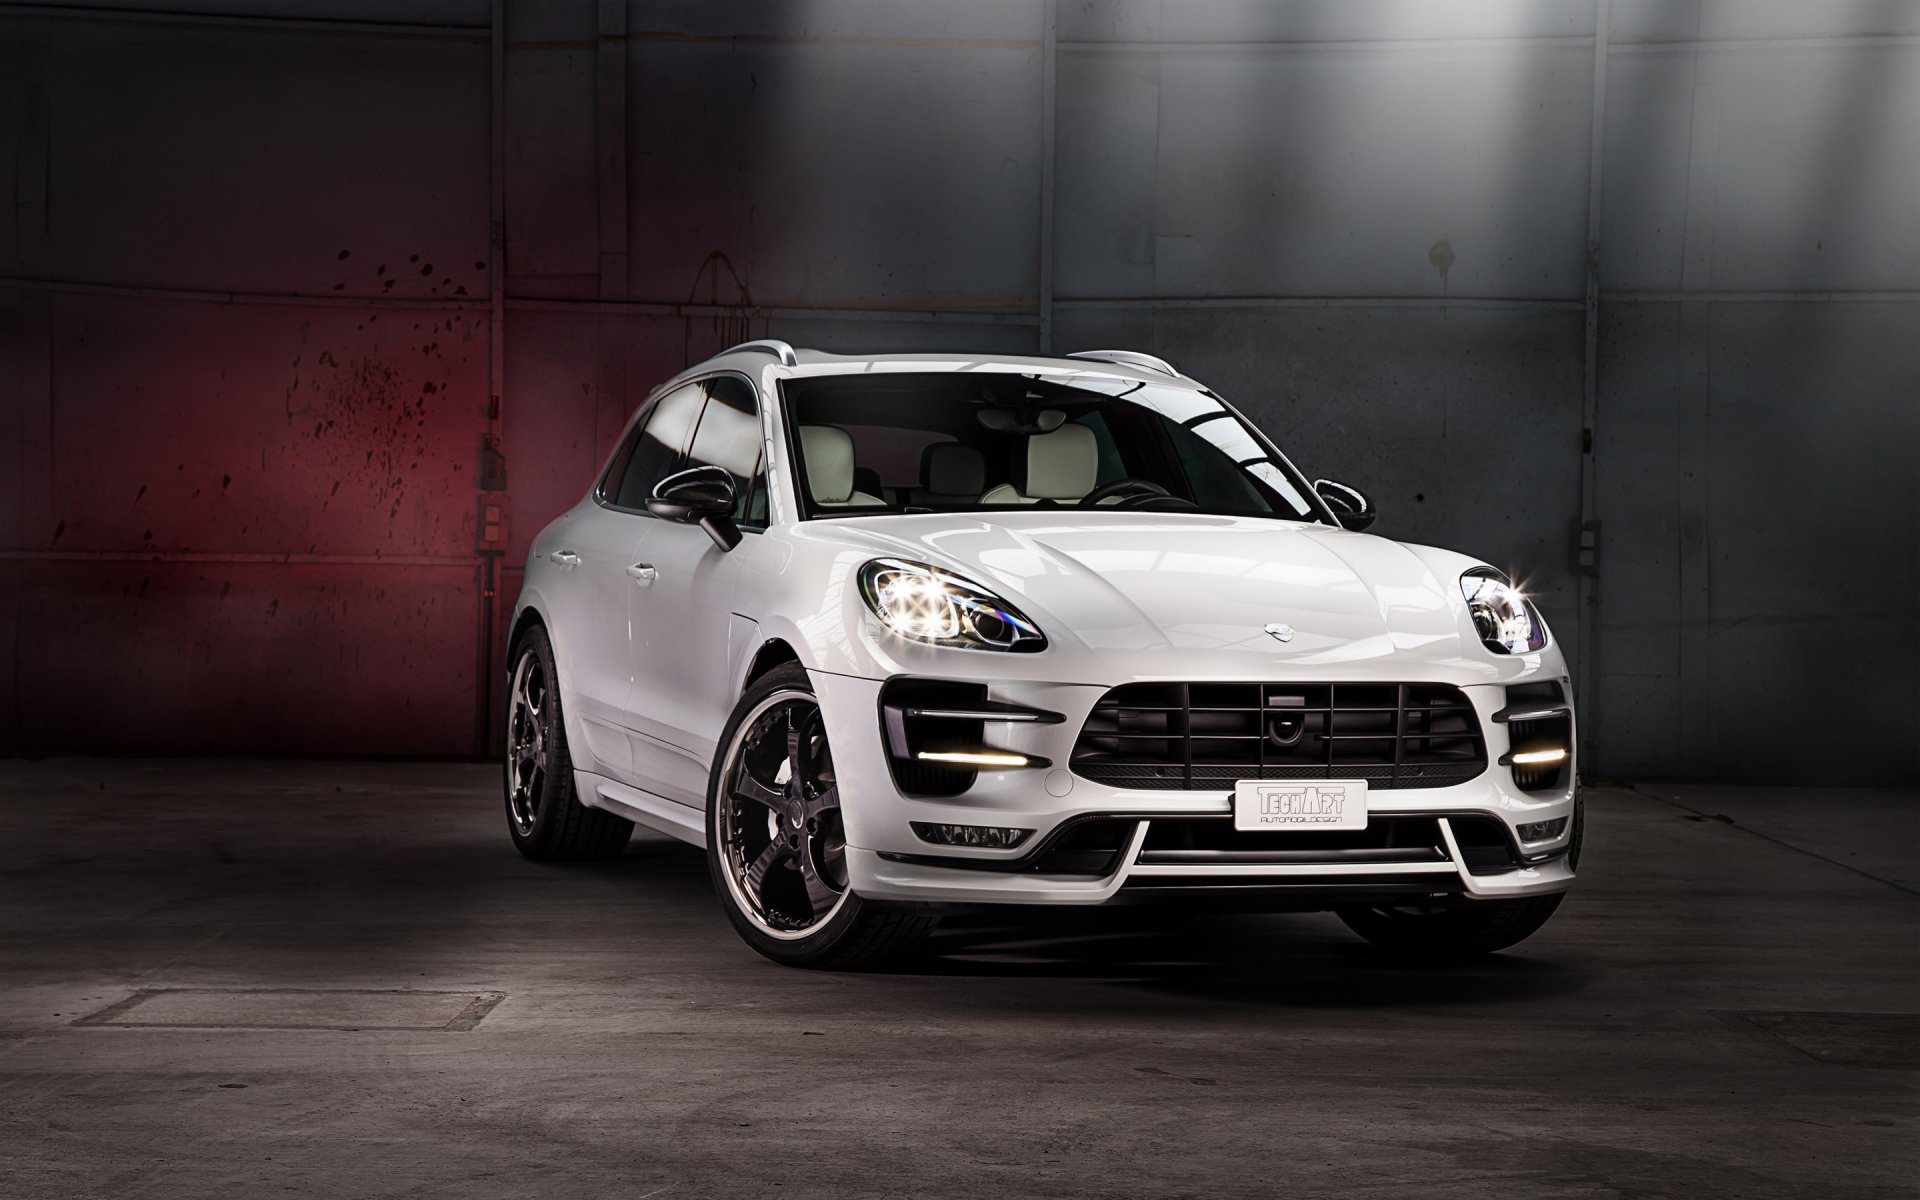 29 Porsche Macan Hd Wallpapers Background Images Wallpaper Abyss